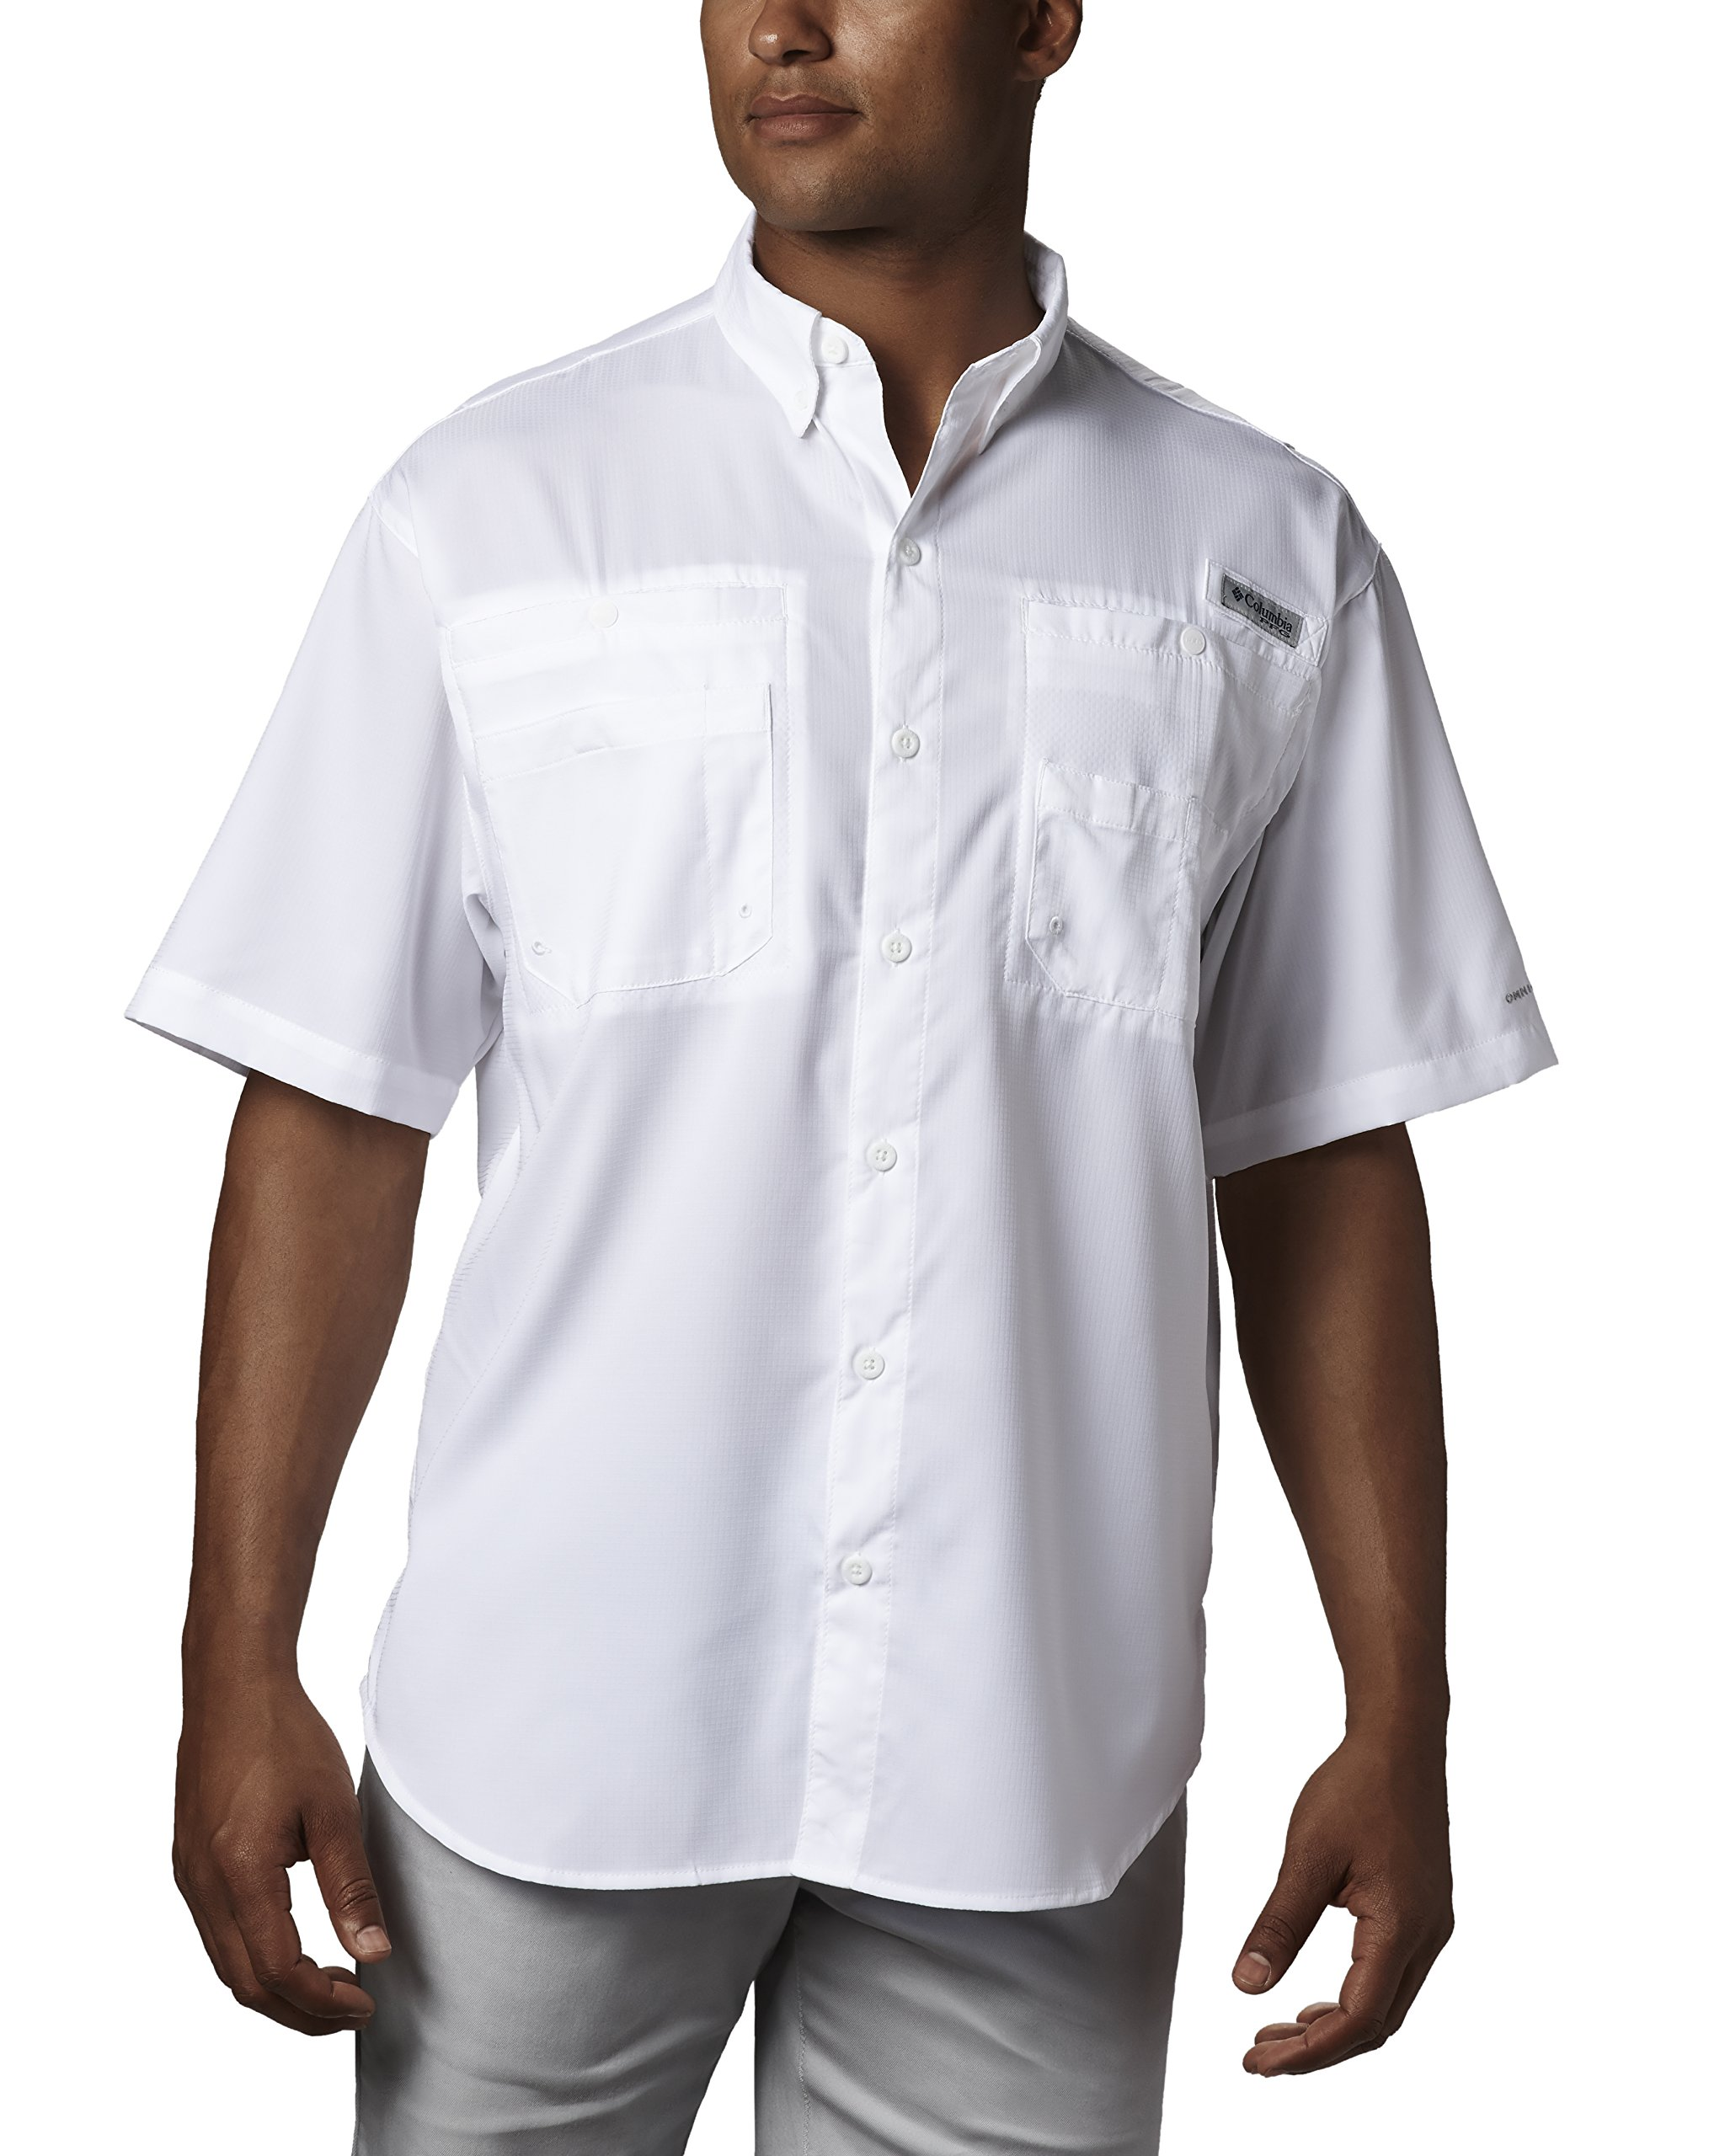 Columbia Men's Tamiami II Short Sleeve Fishing Shirt, White, X-Small